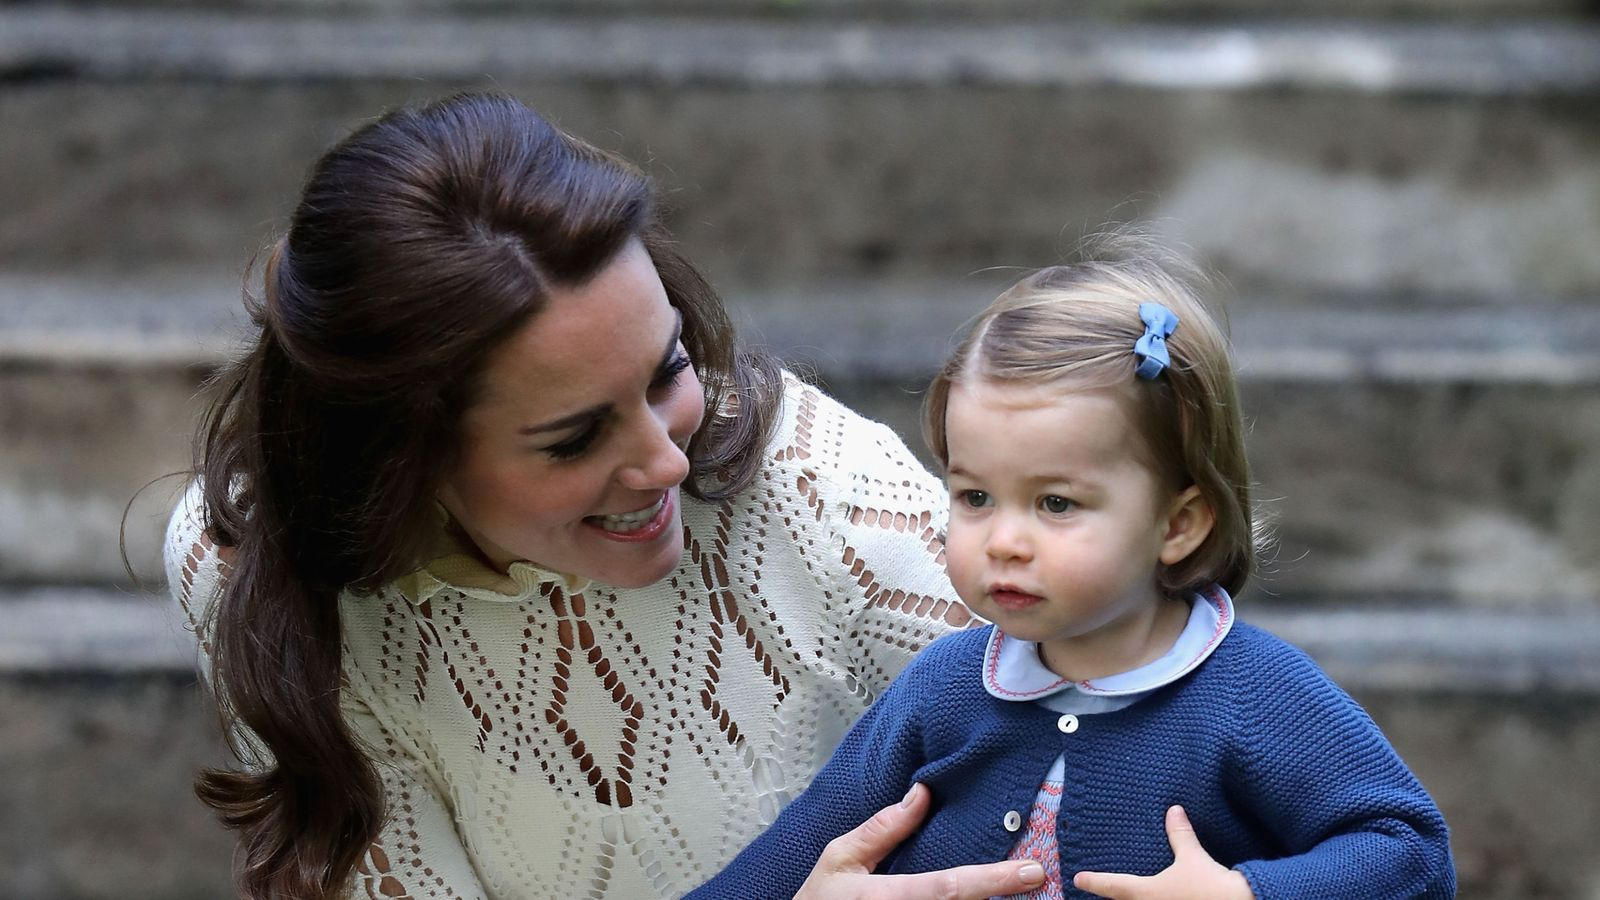 The Duchess of Cambridge with Princess Charlotte